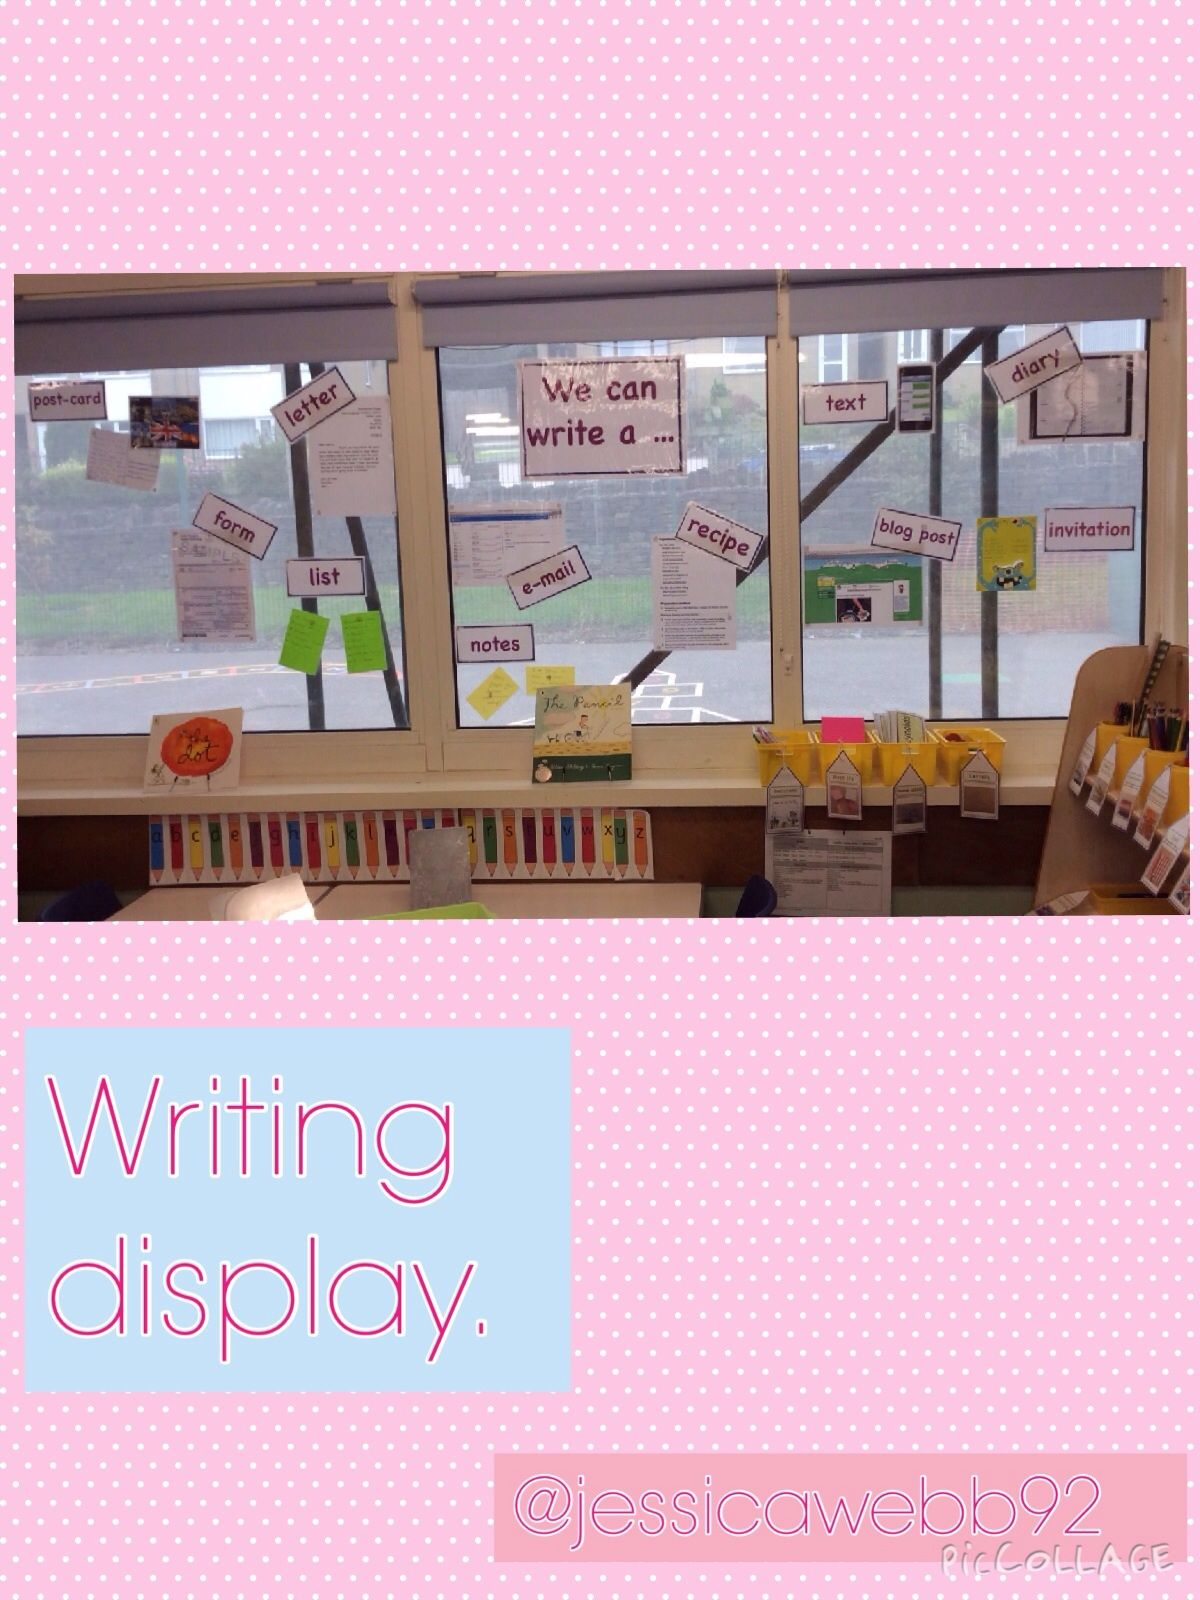 Writing area display we can write a early years classroom writing area display we can write a stopboris Image collections